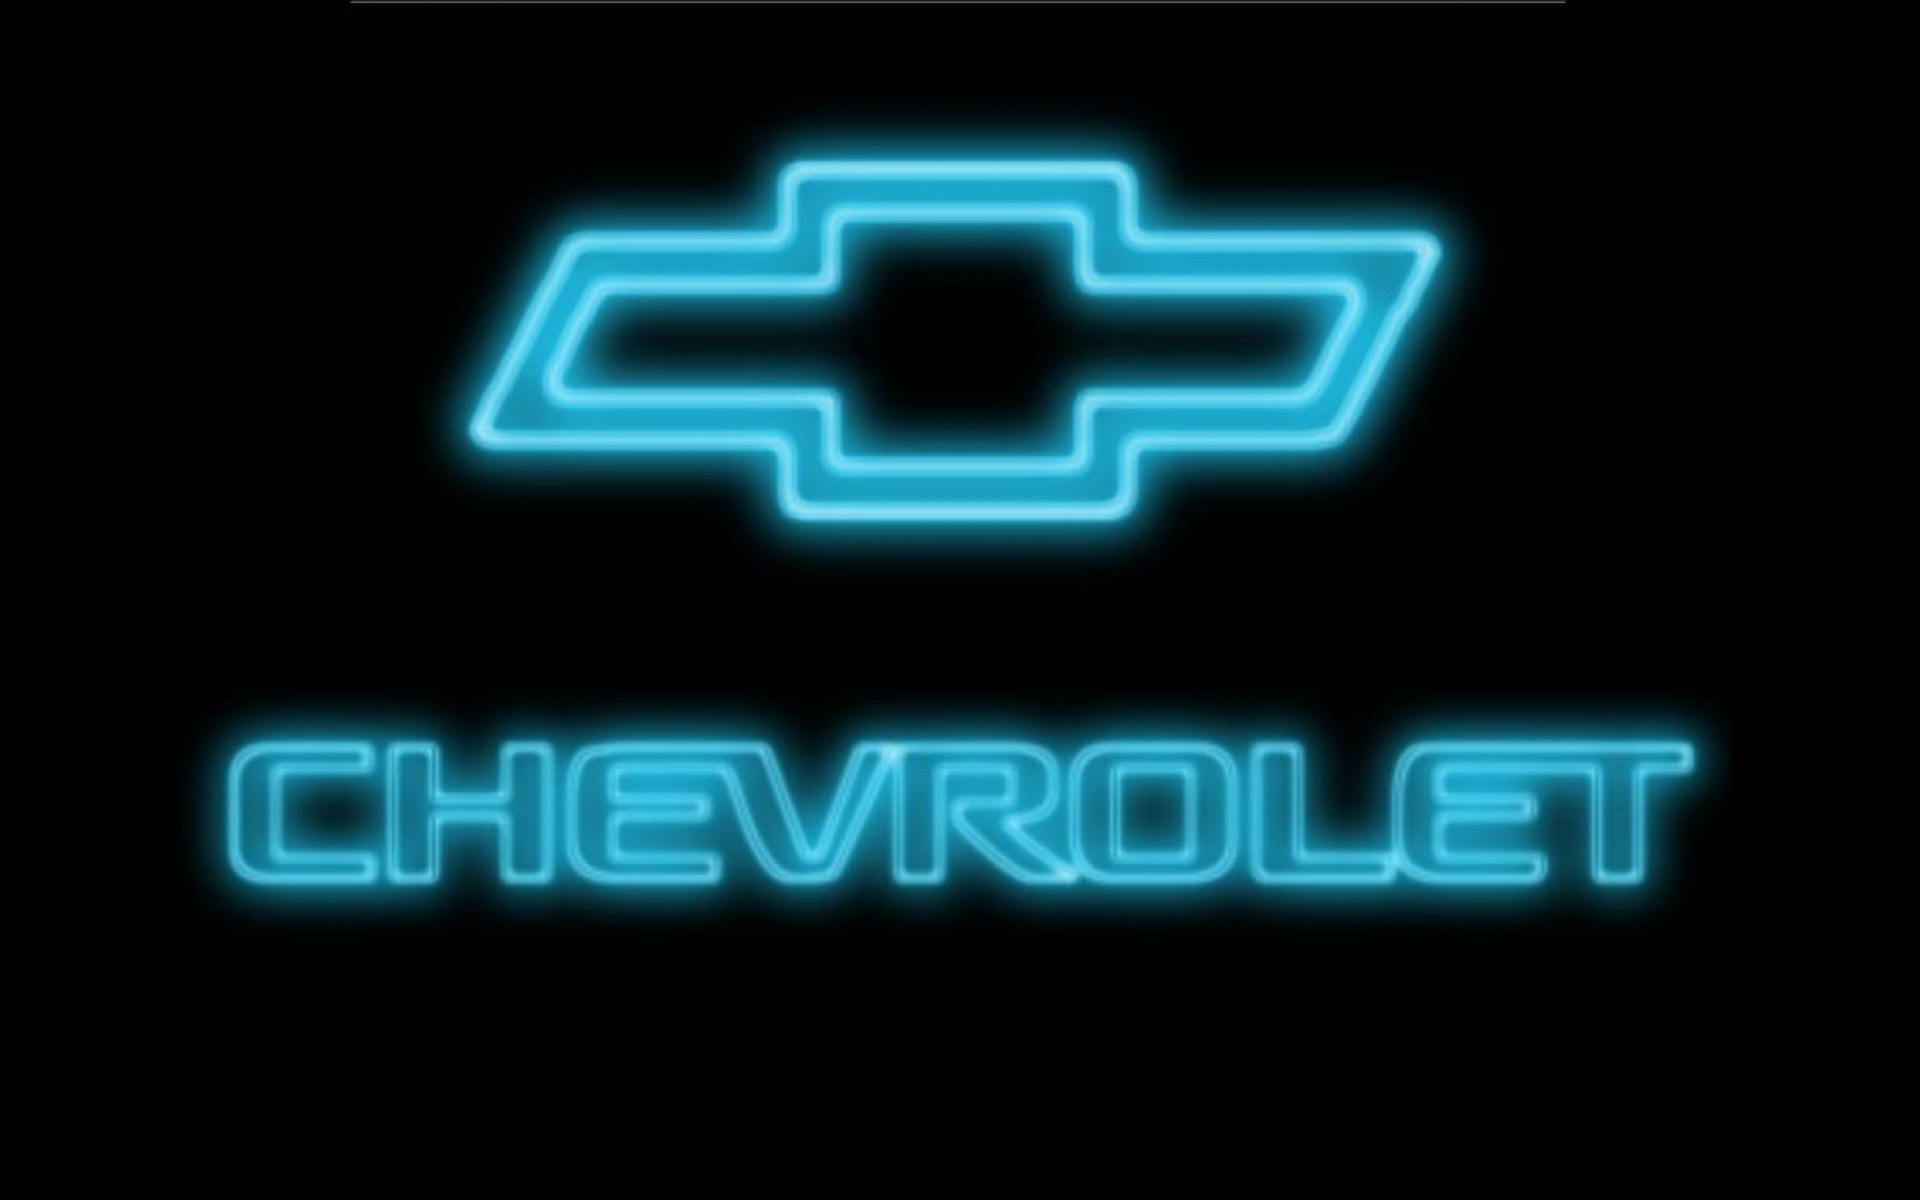 Chevy Logo Iphone Wallpaper 66 Images